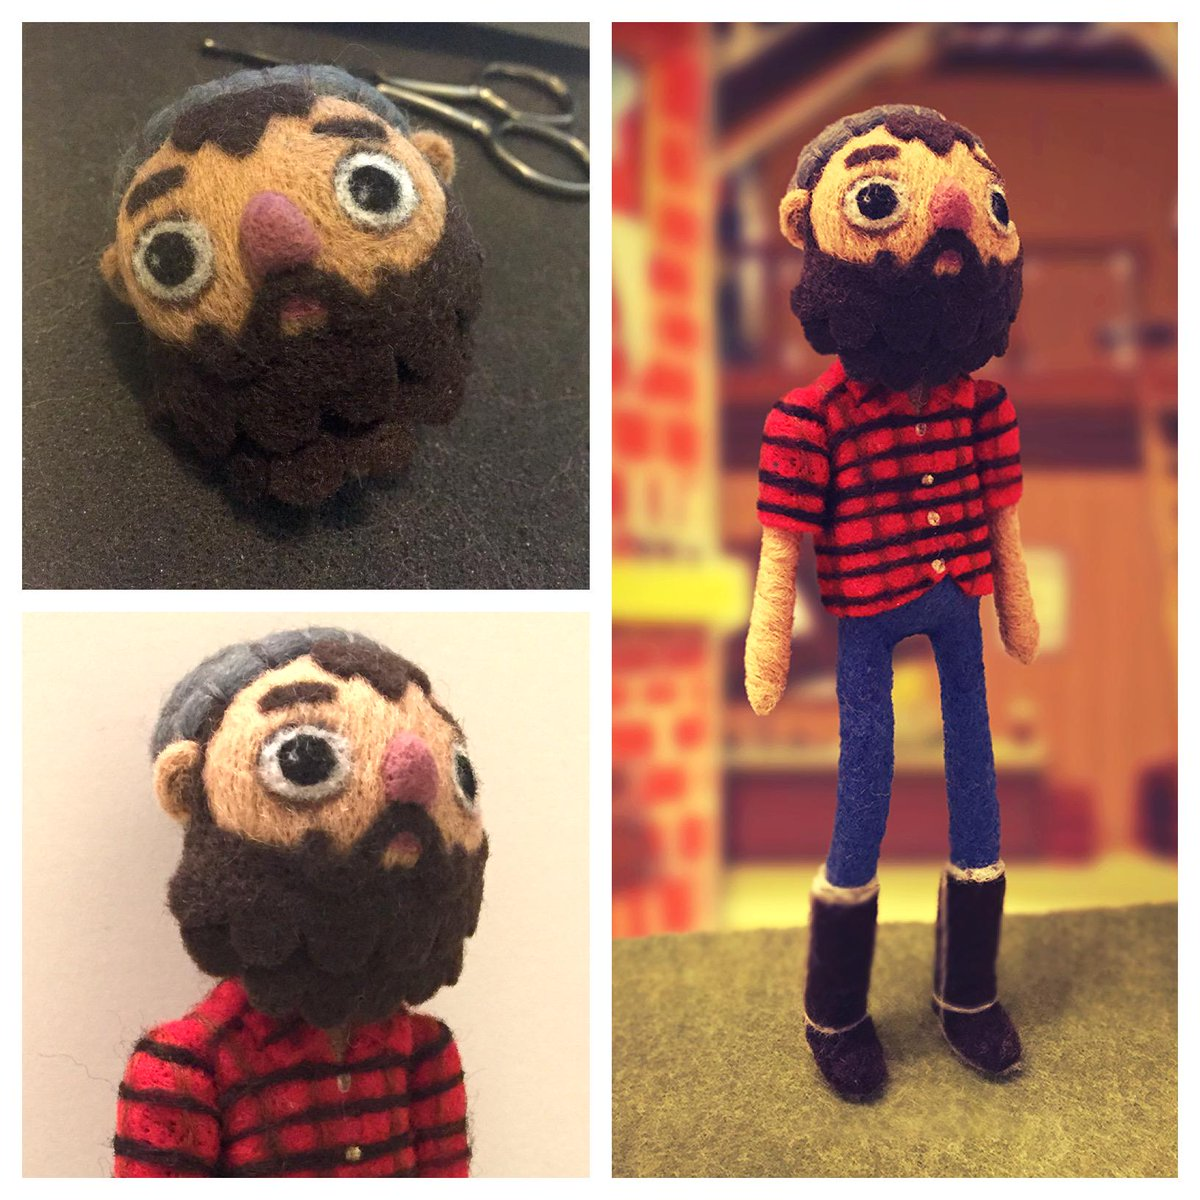 Felted my favourite character, Curtis the Lumberjack (voiced by @wilw!), from @DoubleFine's incredible #BrokenAge! http://t.co/yqSkG2WRBj